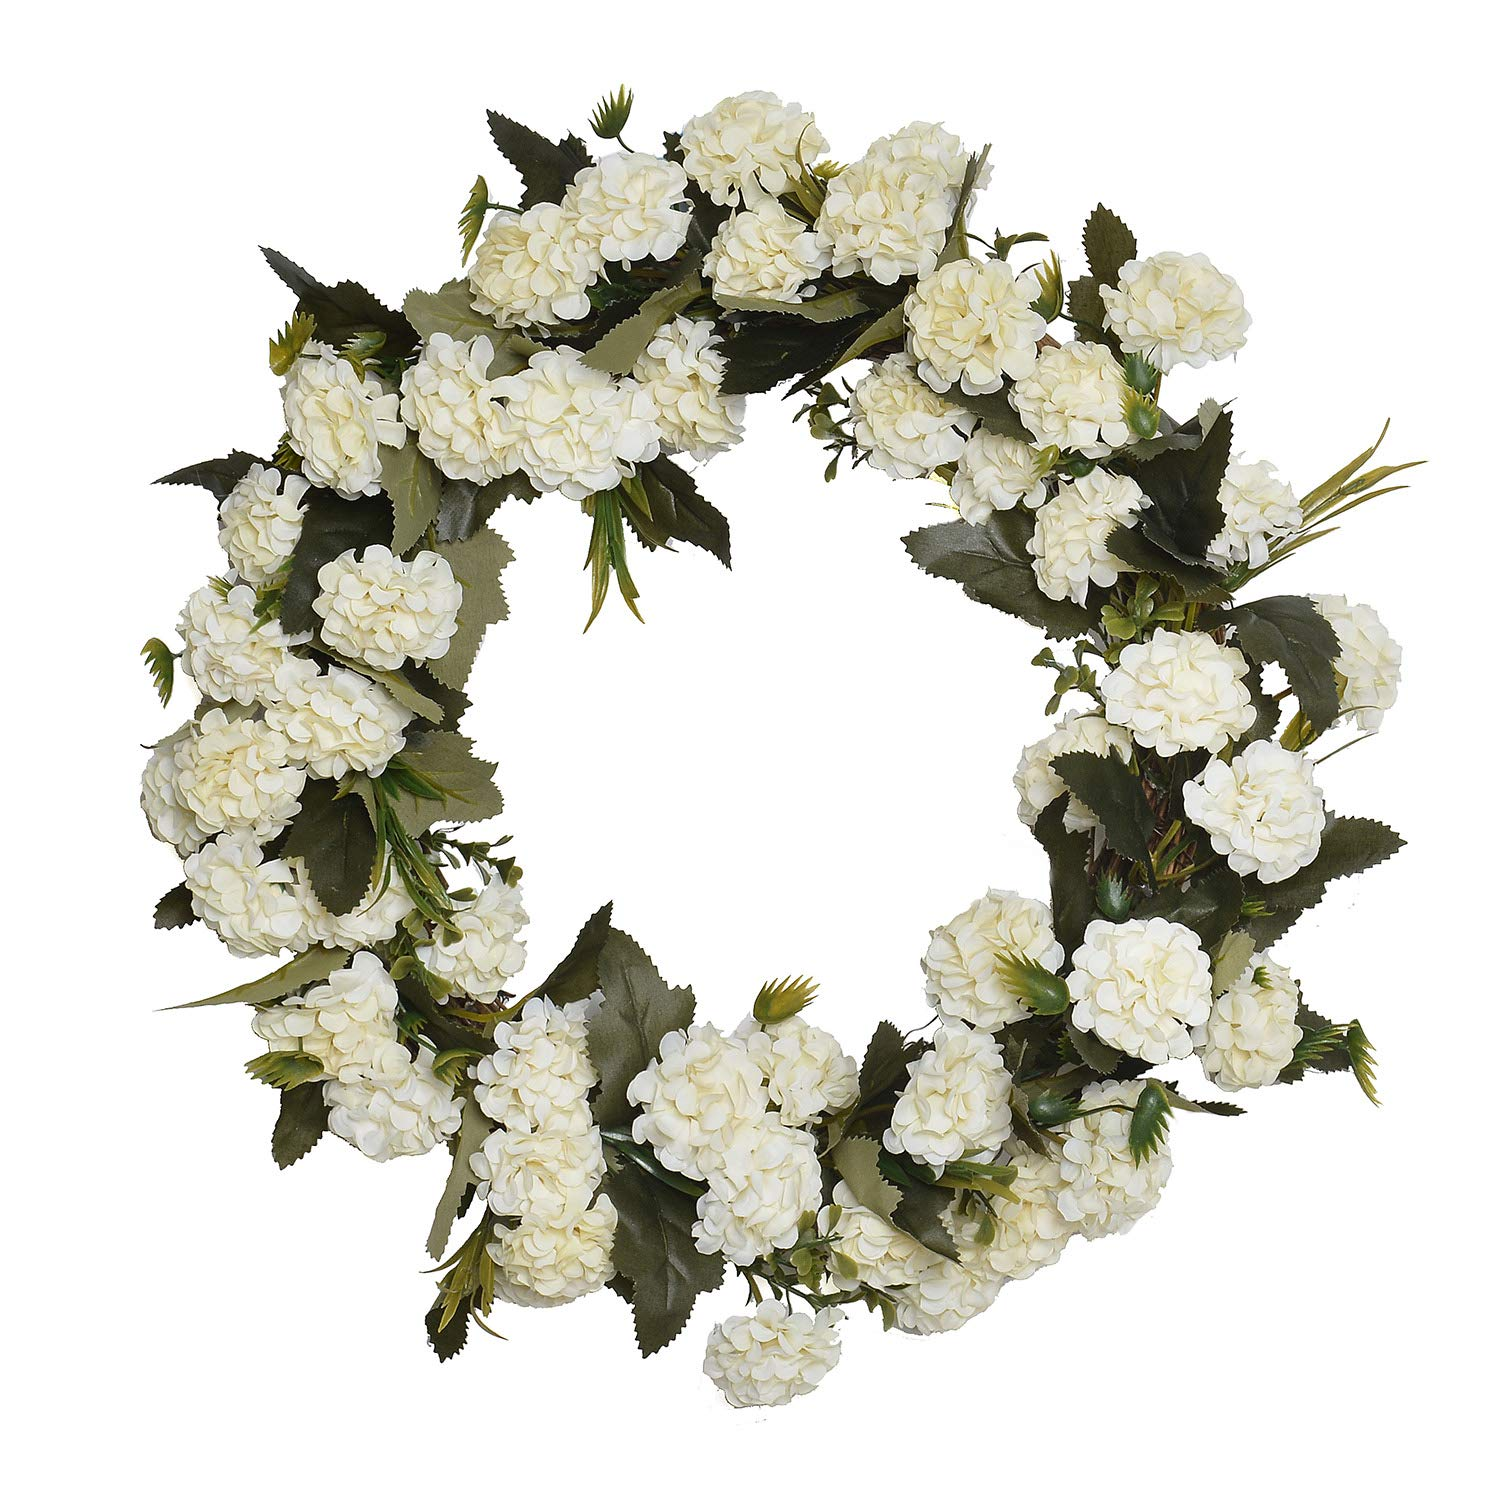 FAVOWREATH 2018 Vitality Series FAVO-W117 Handmade 14 inch White Carnation,Wild Grass,Leaf Grapevine Wreath for Front Door/Wall/Fireplace Hanger Nearly Natural Everyday Home Decor by FAVOWREATH